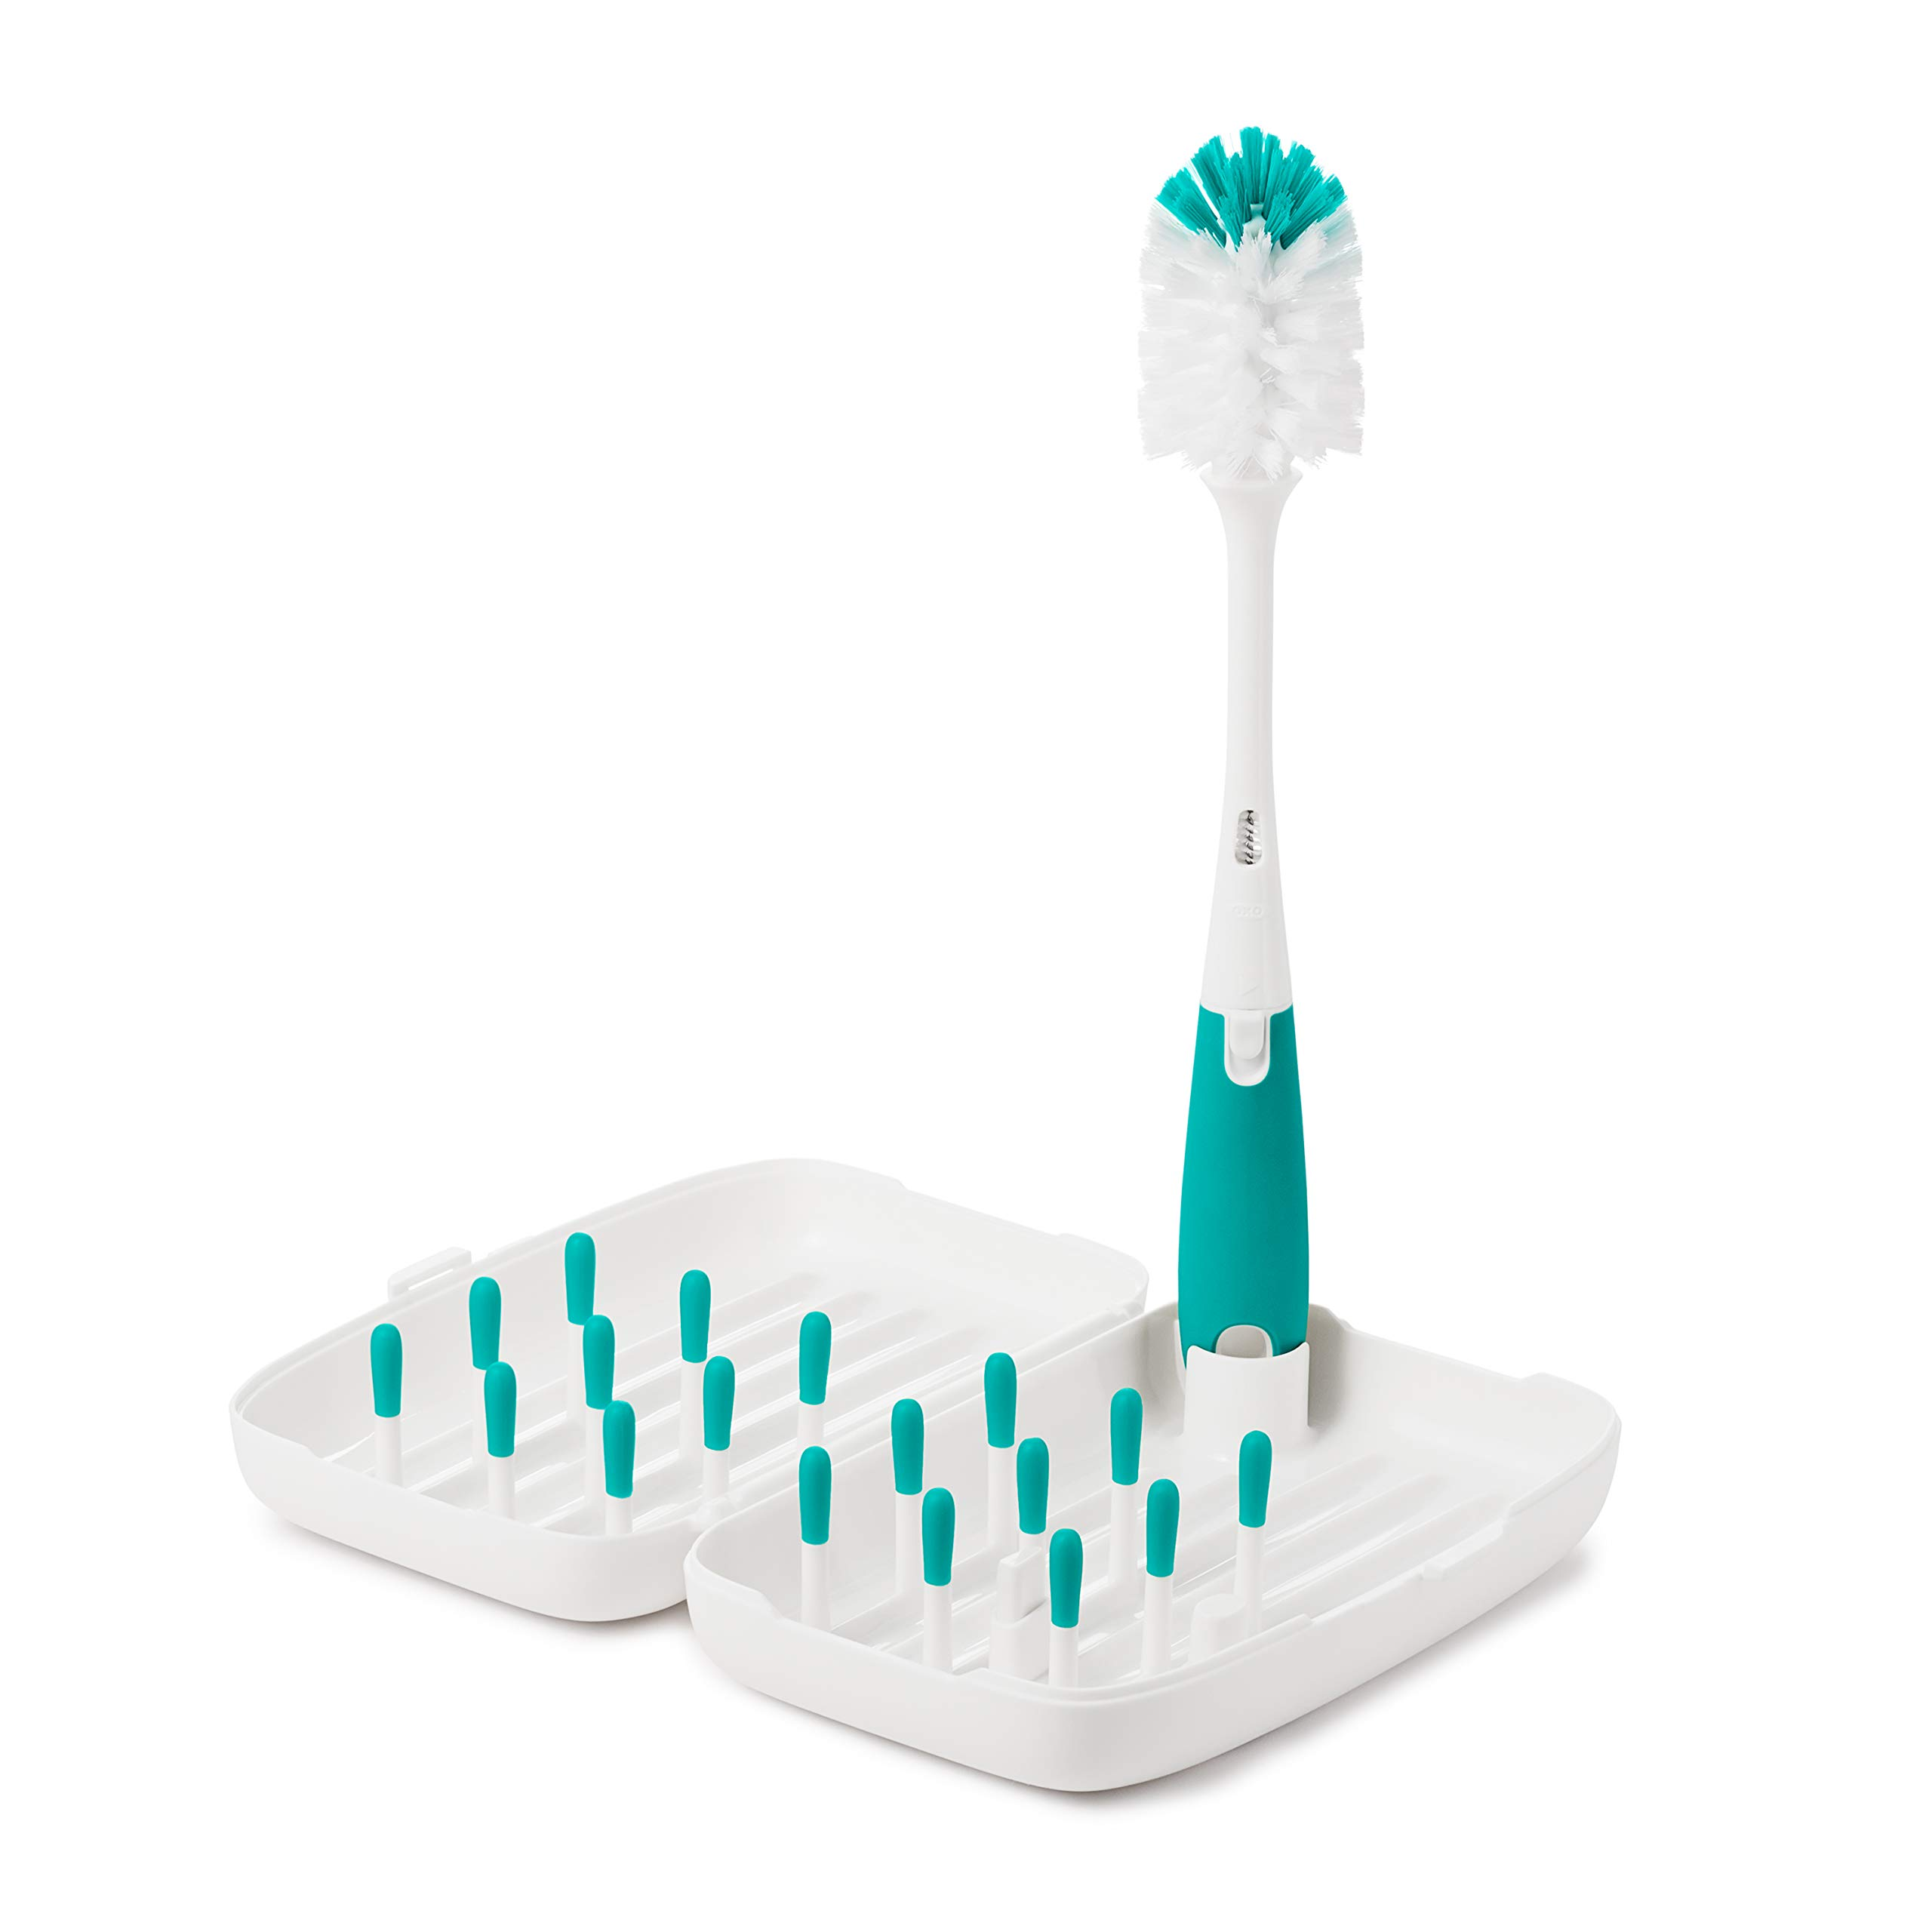 OXO Tot On-The-Go Drying Rack with Bottle Brush, Teal by OXO Tot